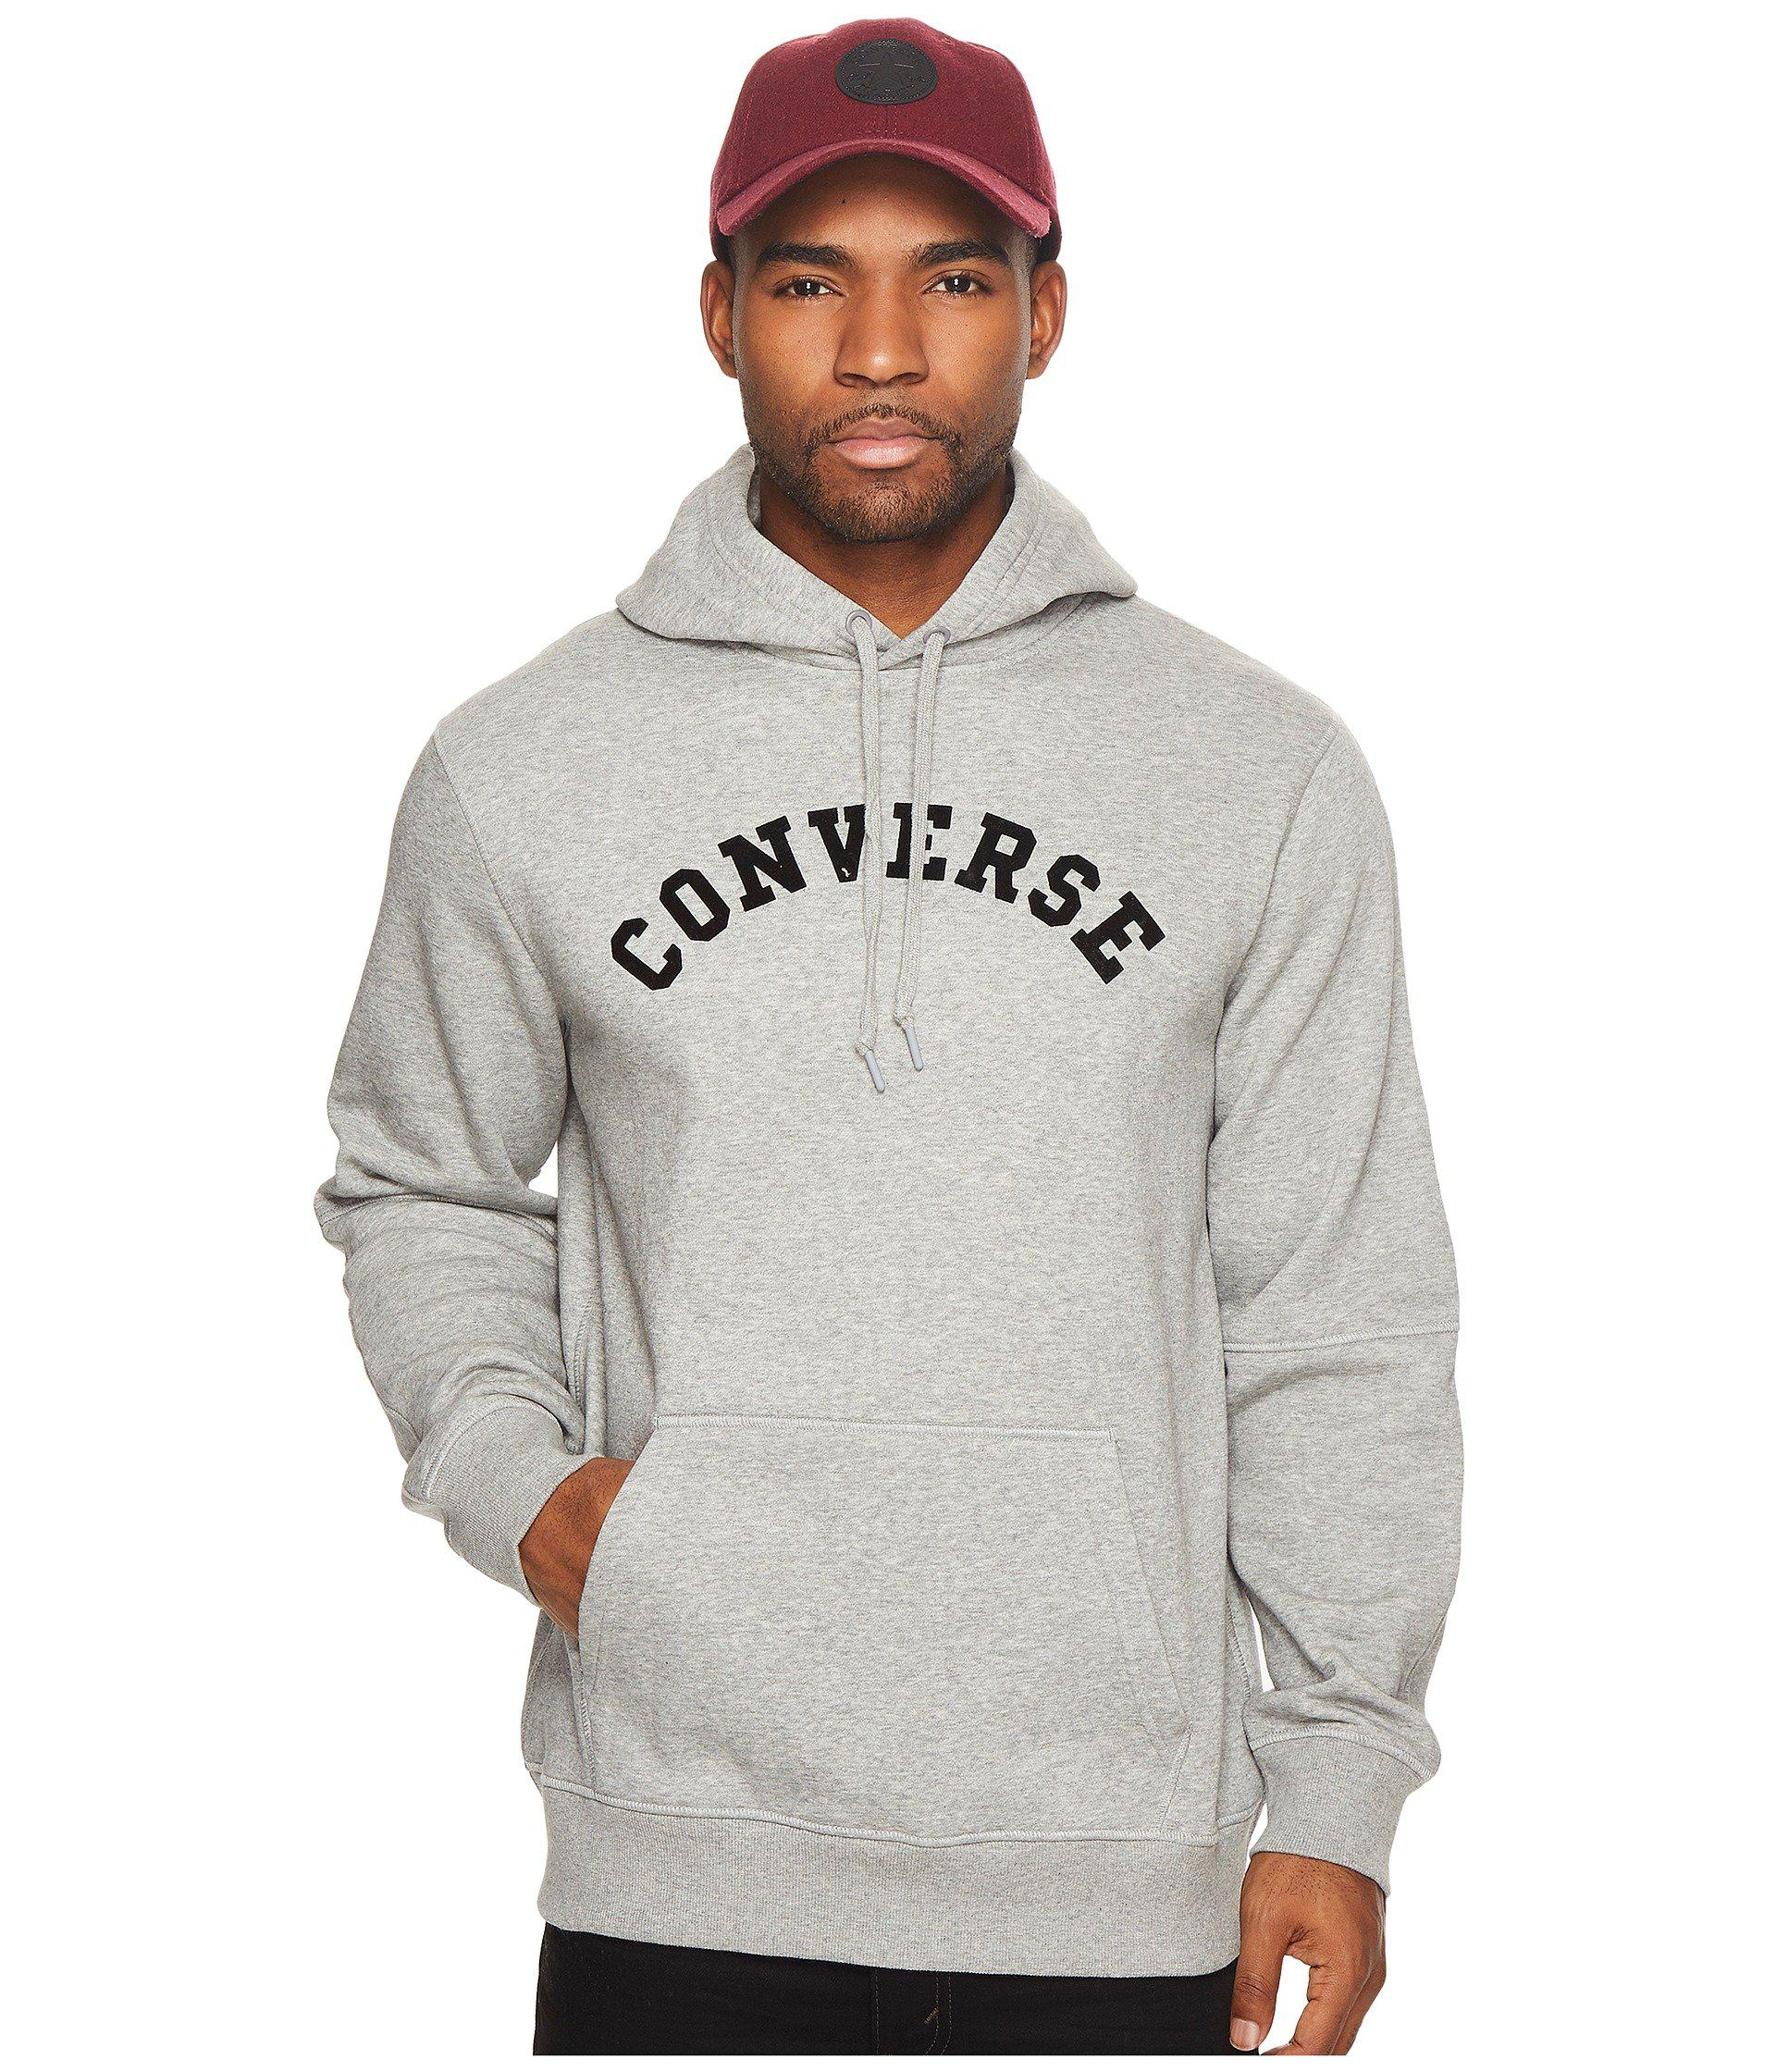 Lyst - Converse Quilted Panel Pullover Hoodie in Gray for Men ... : quilted panel - Adamdwight.com